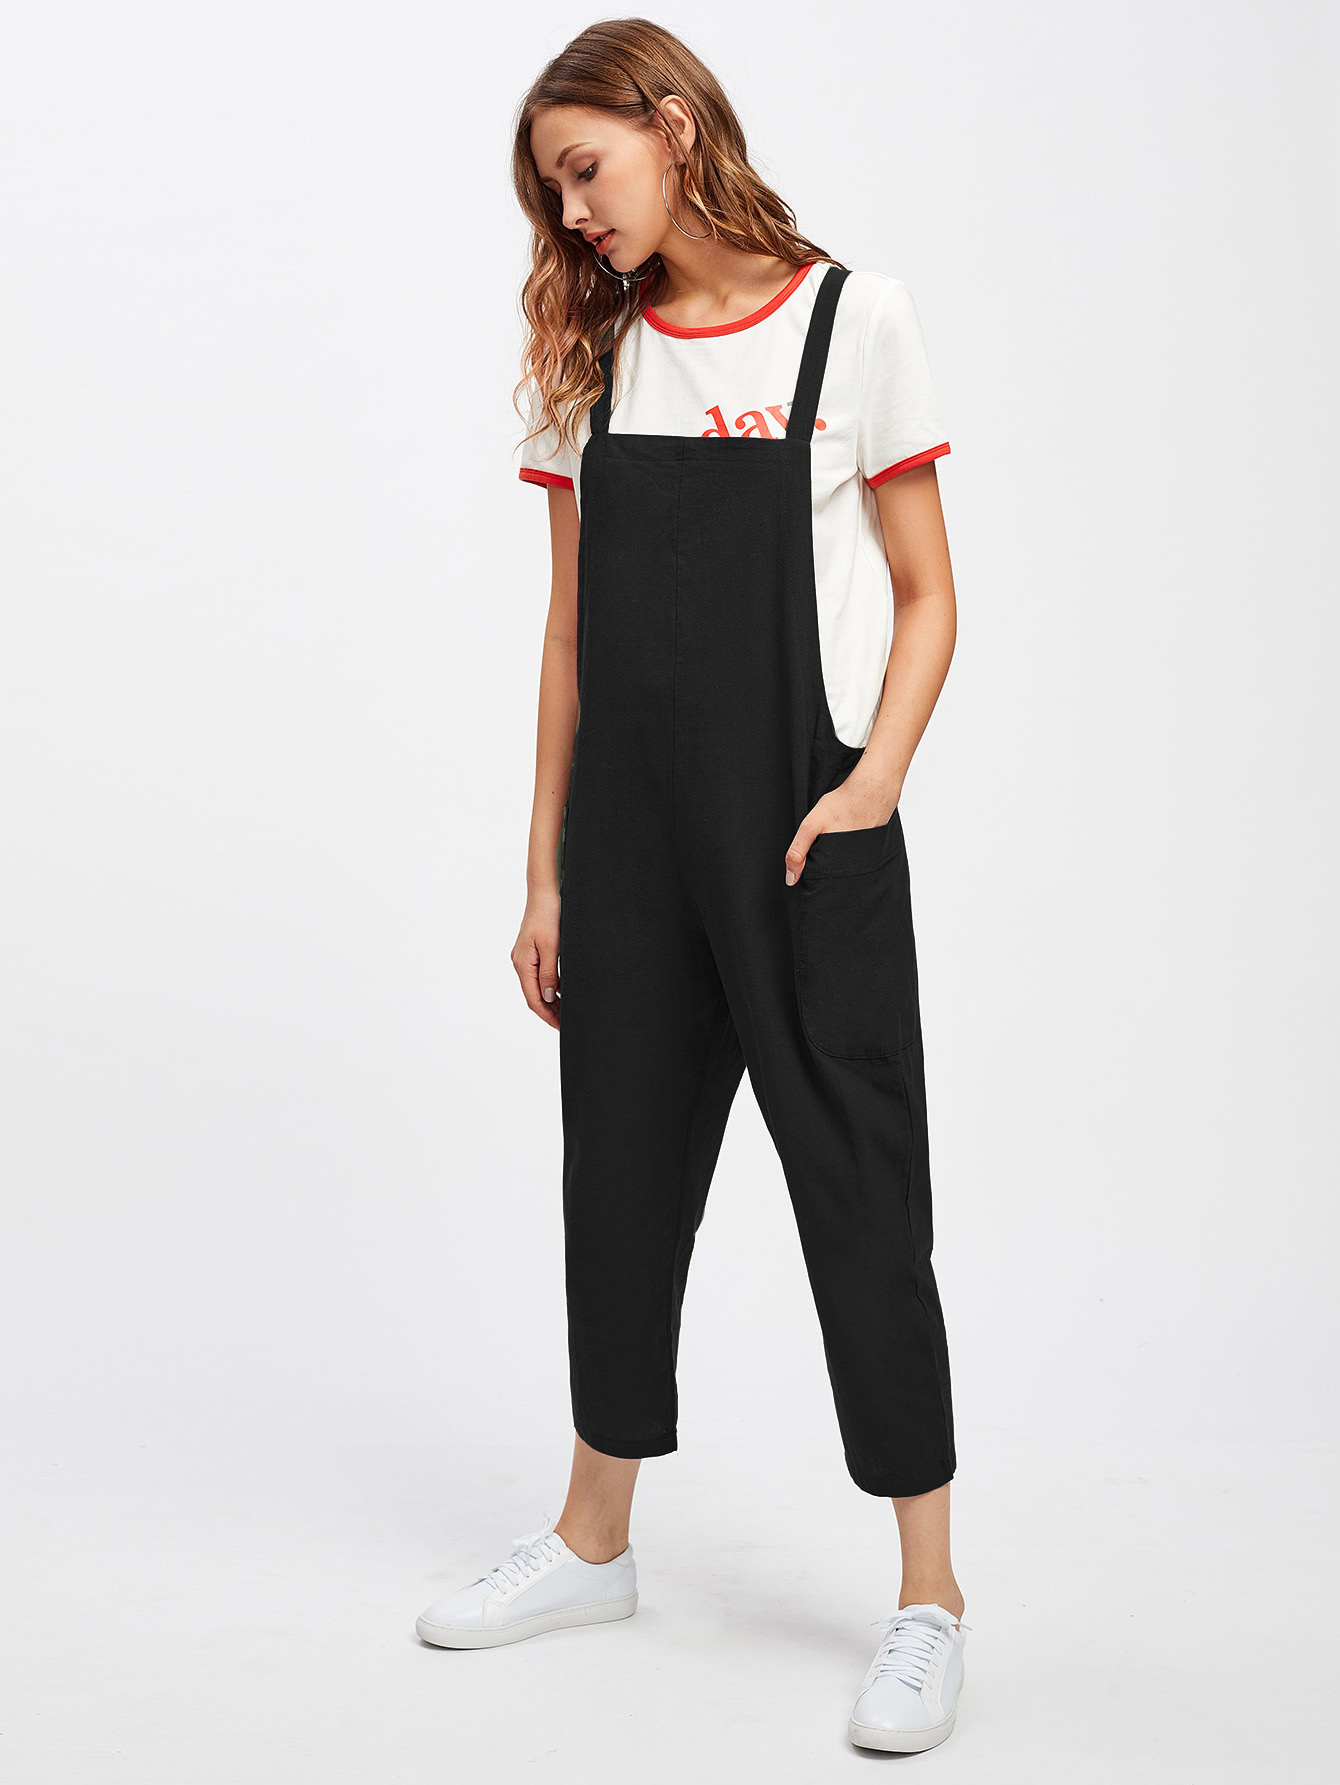 Pocket Side Overall Pants overall yumi overall